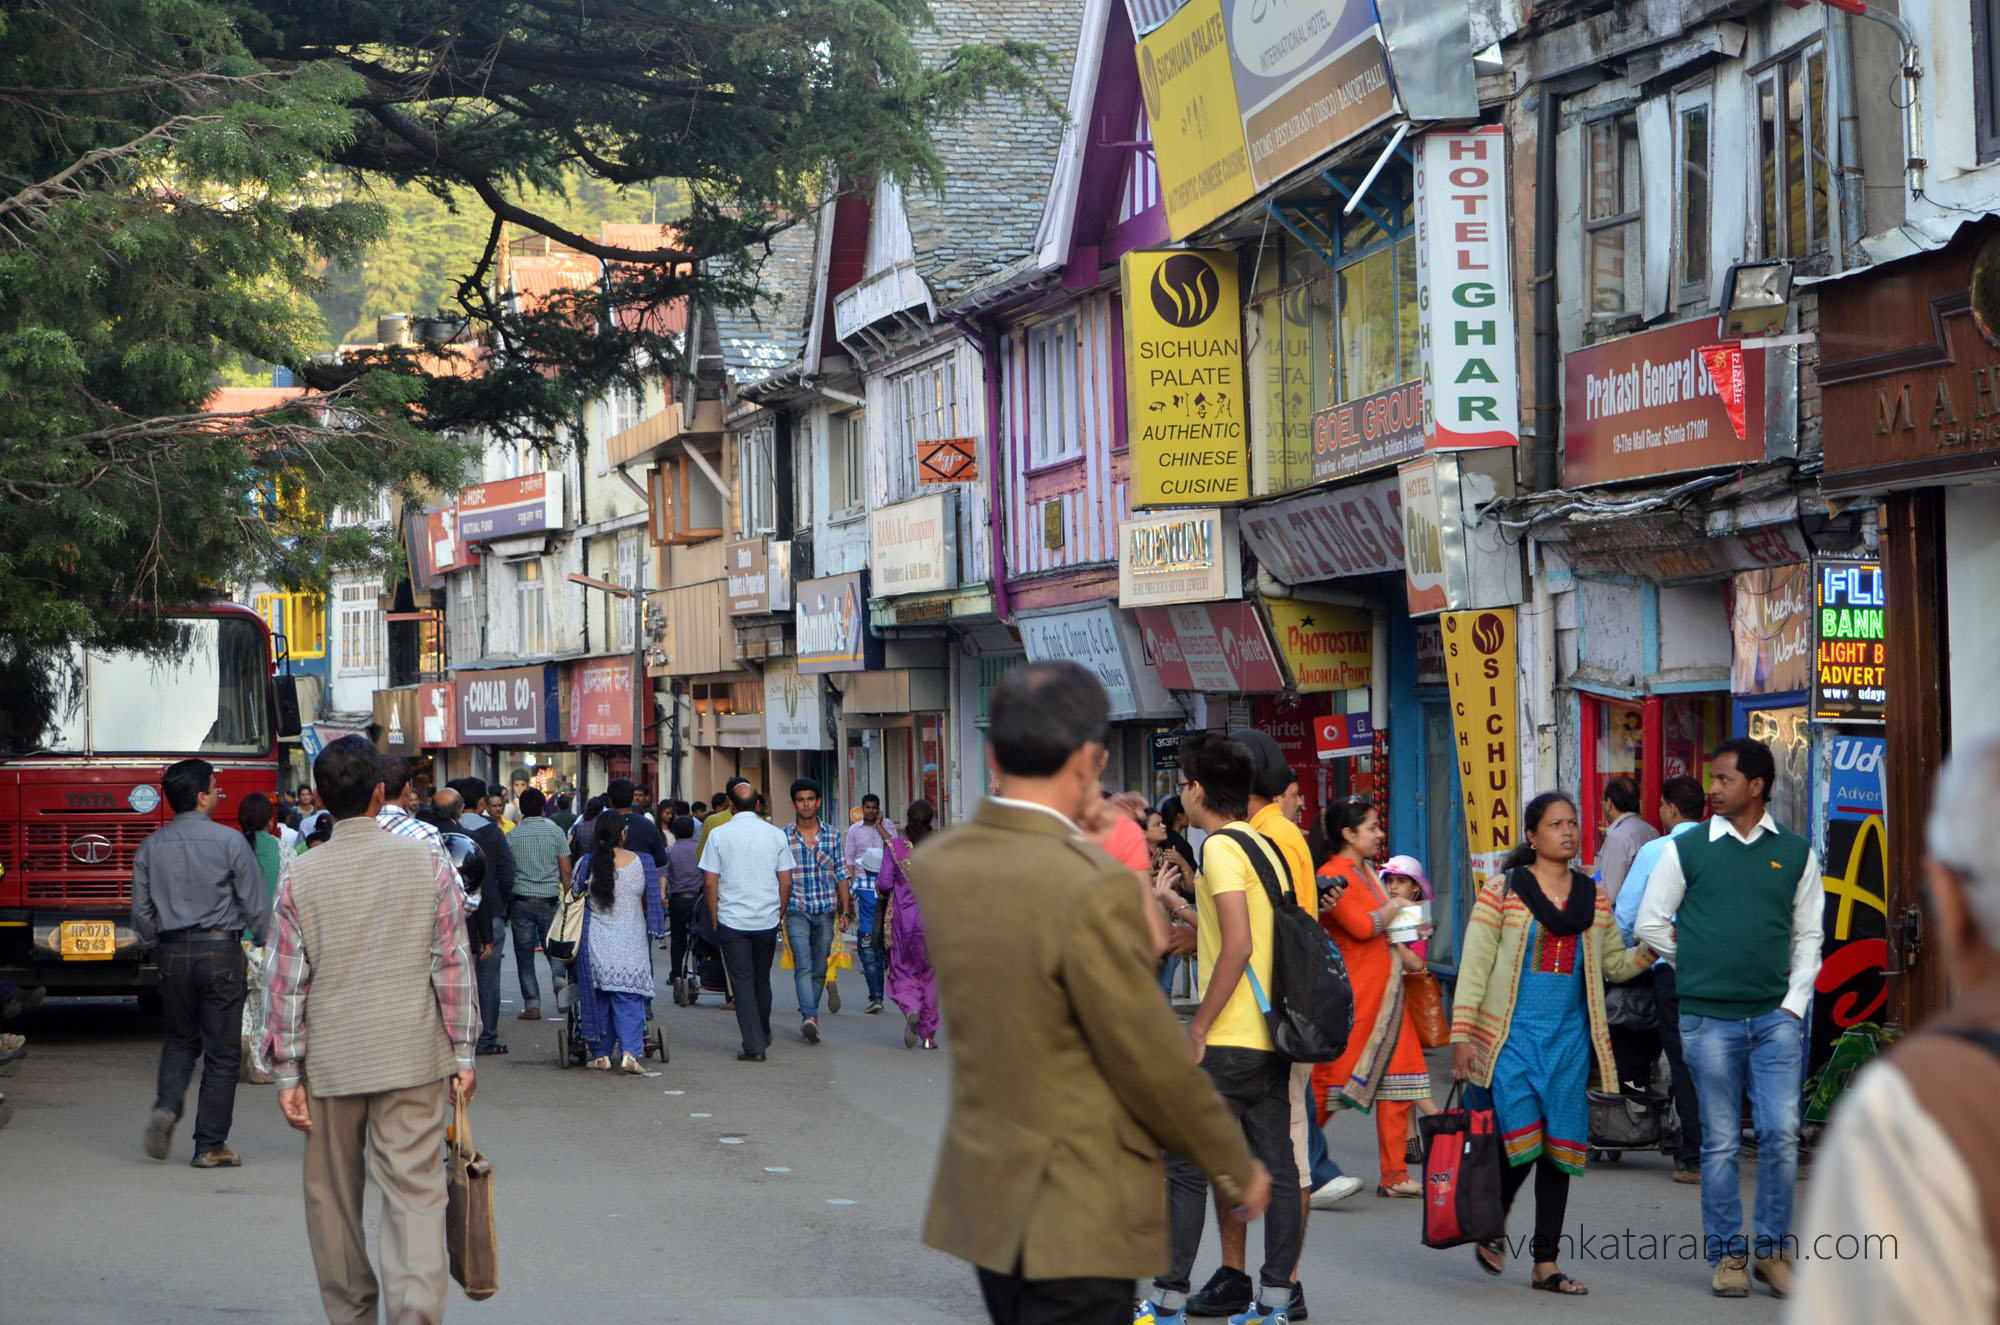 Shopping district - The Mall Road, Shimla